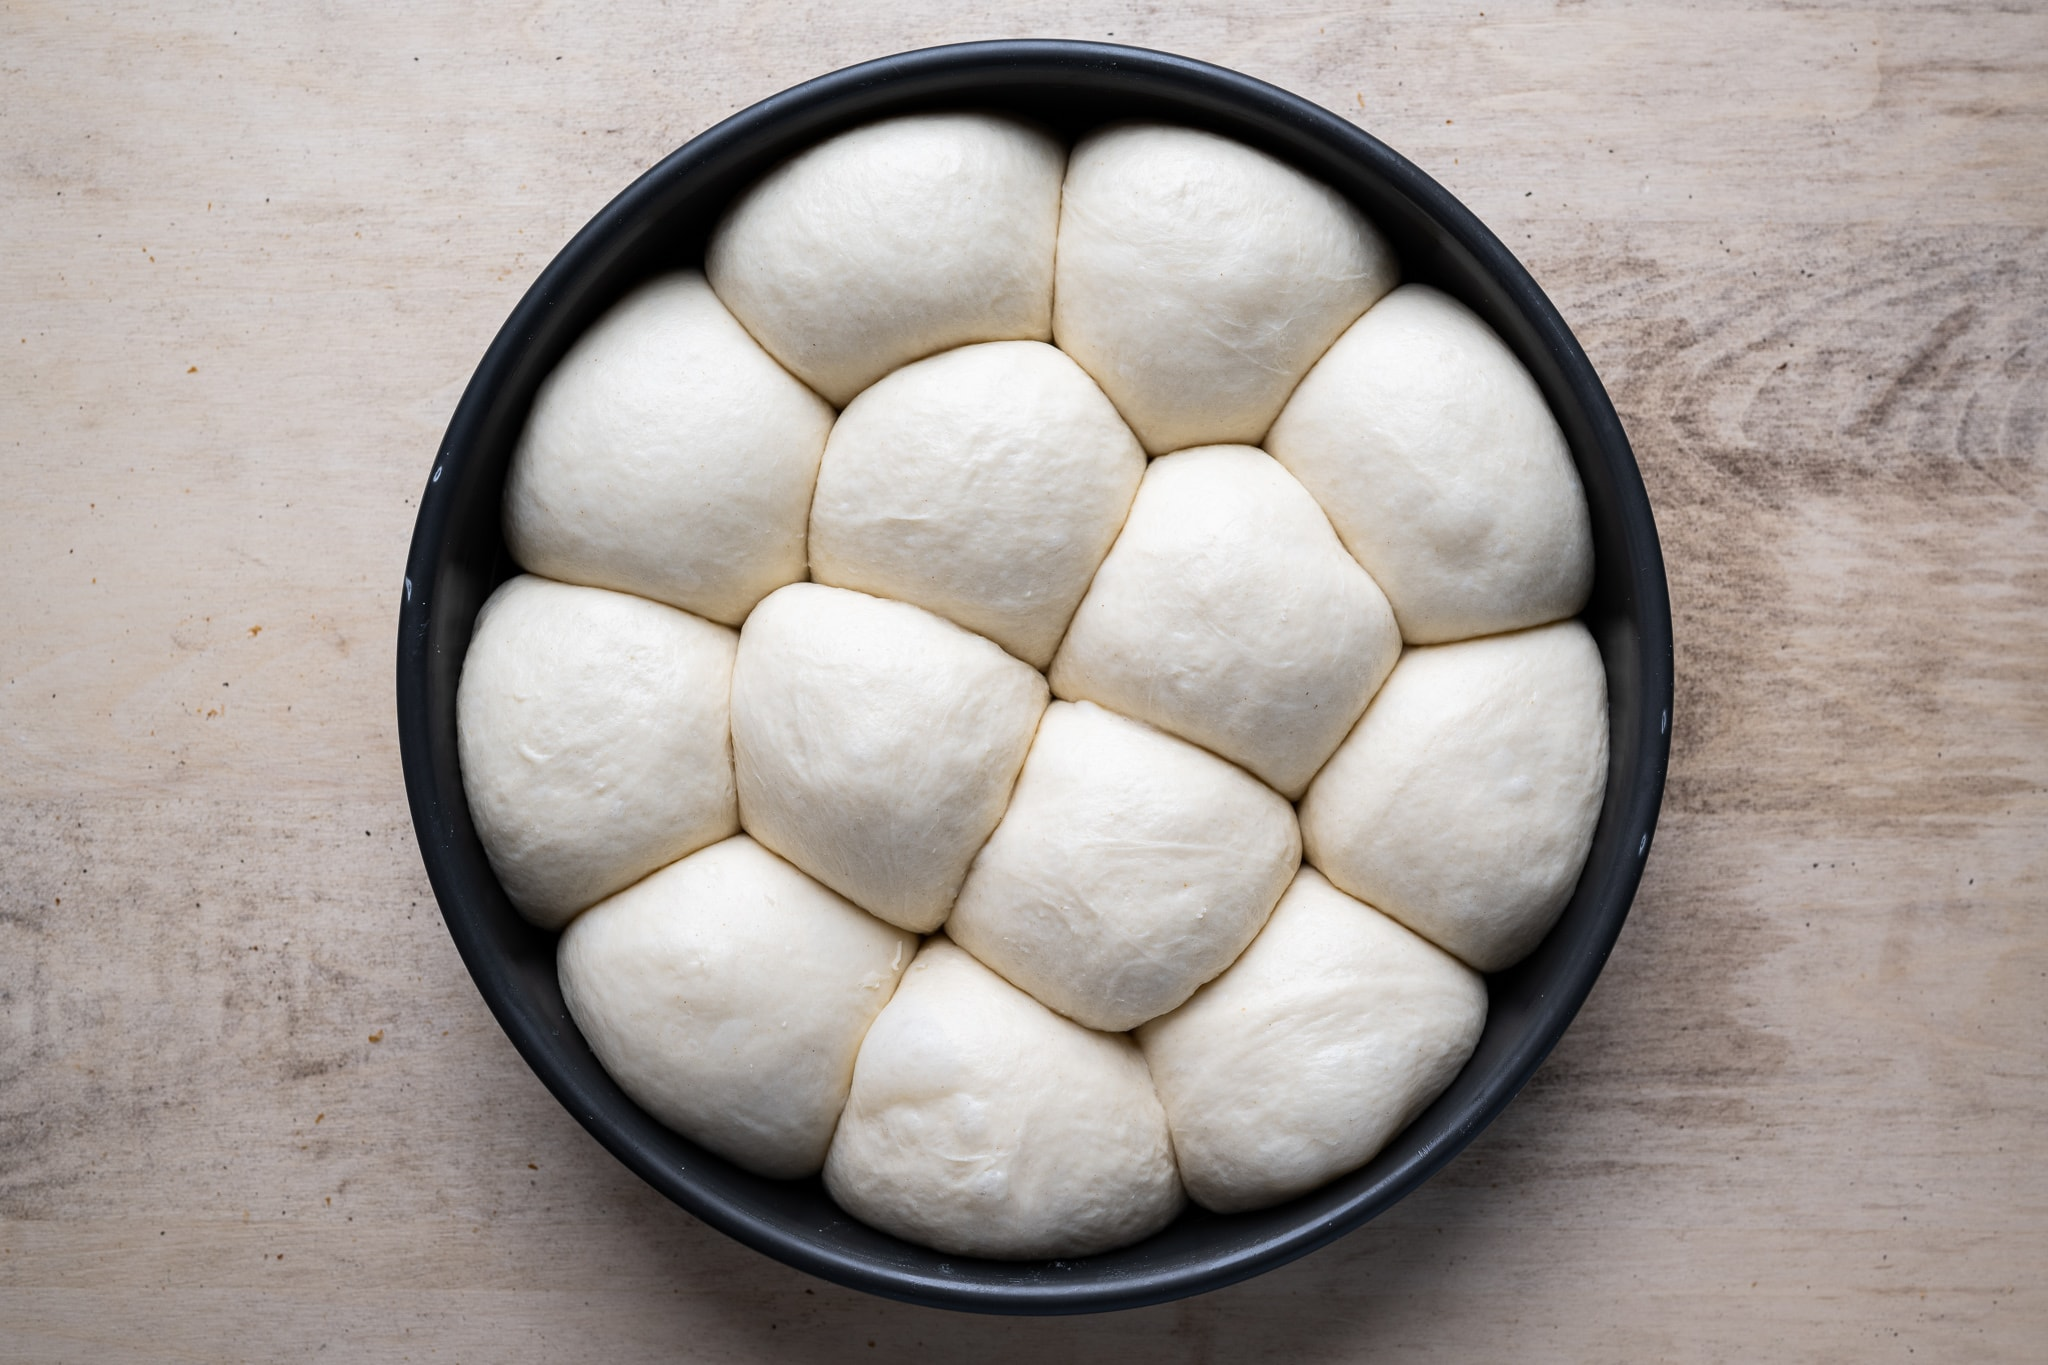 Shaping buns and rolls